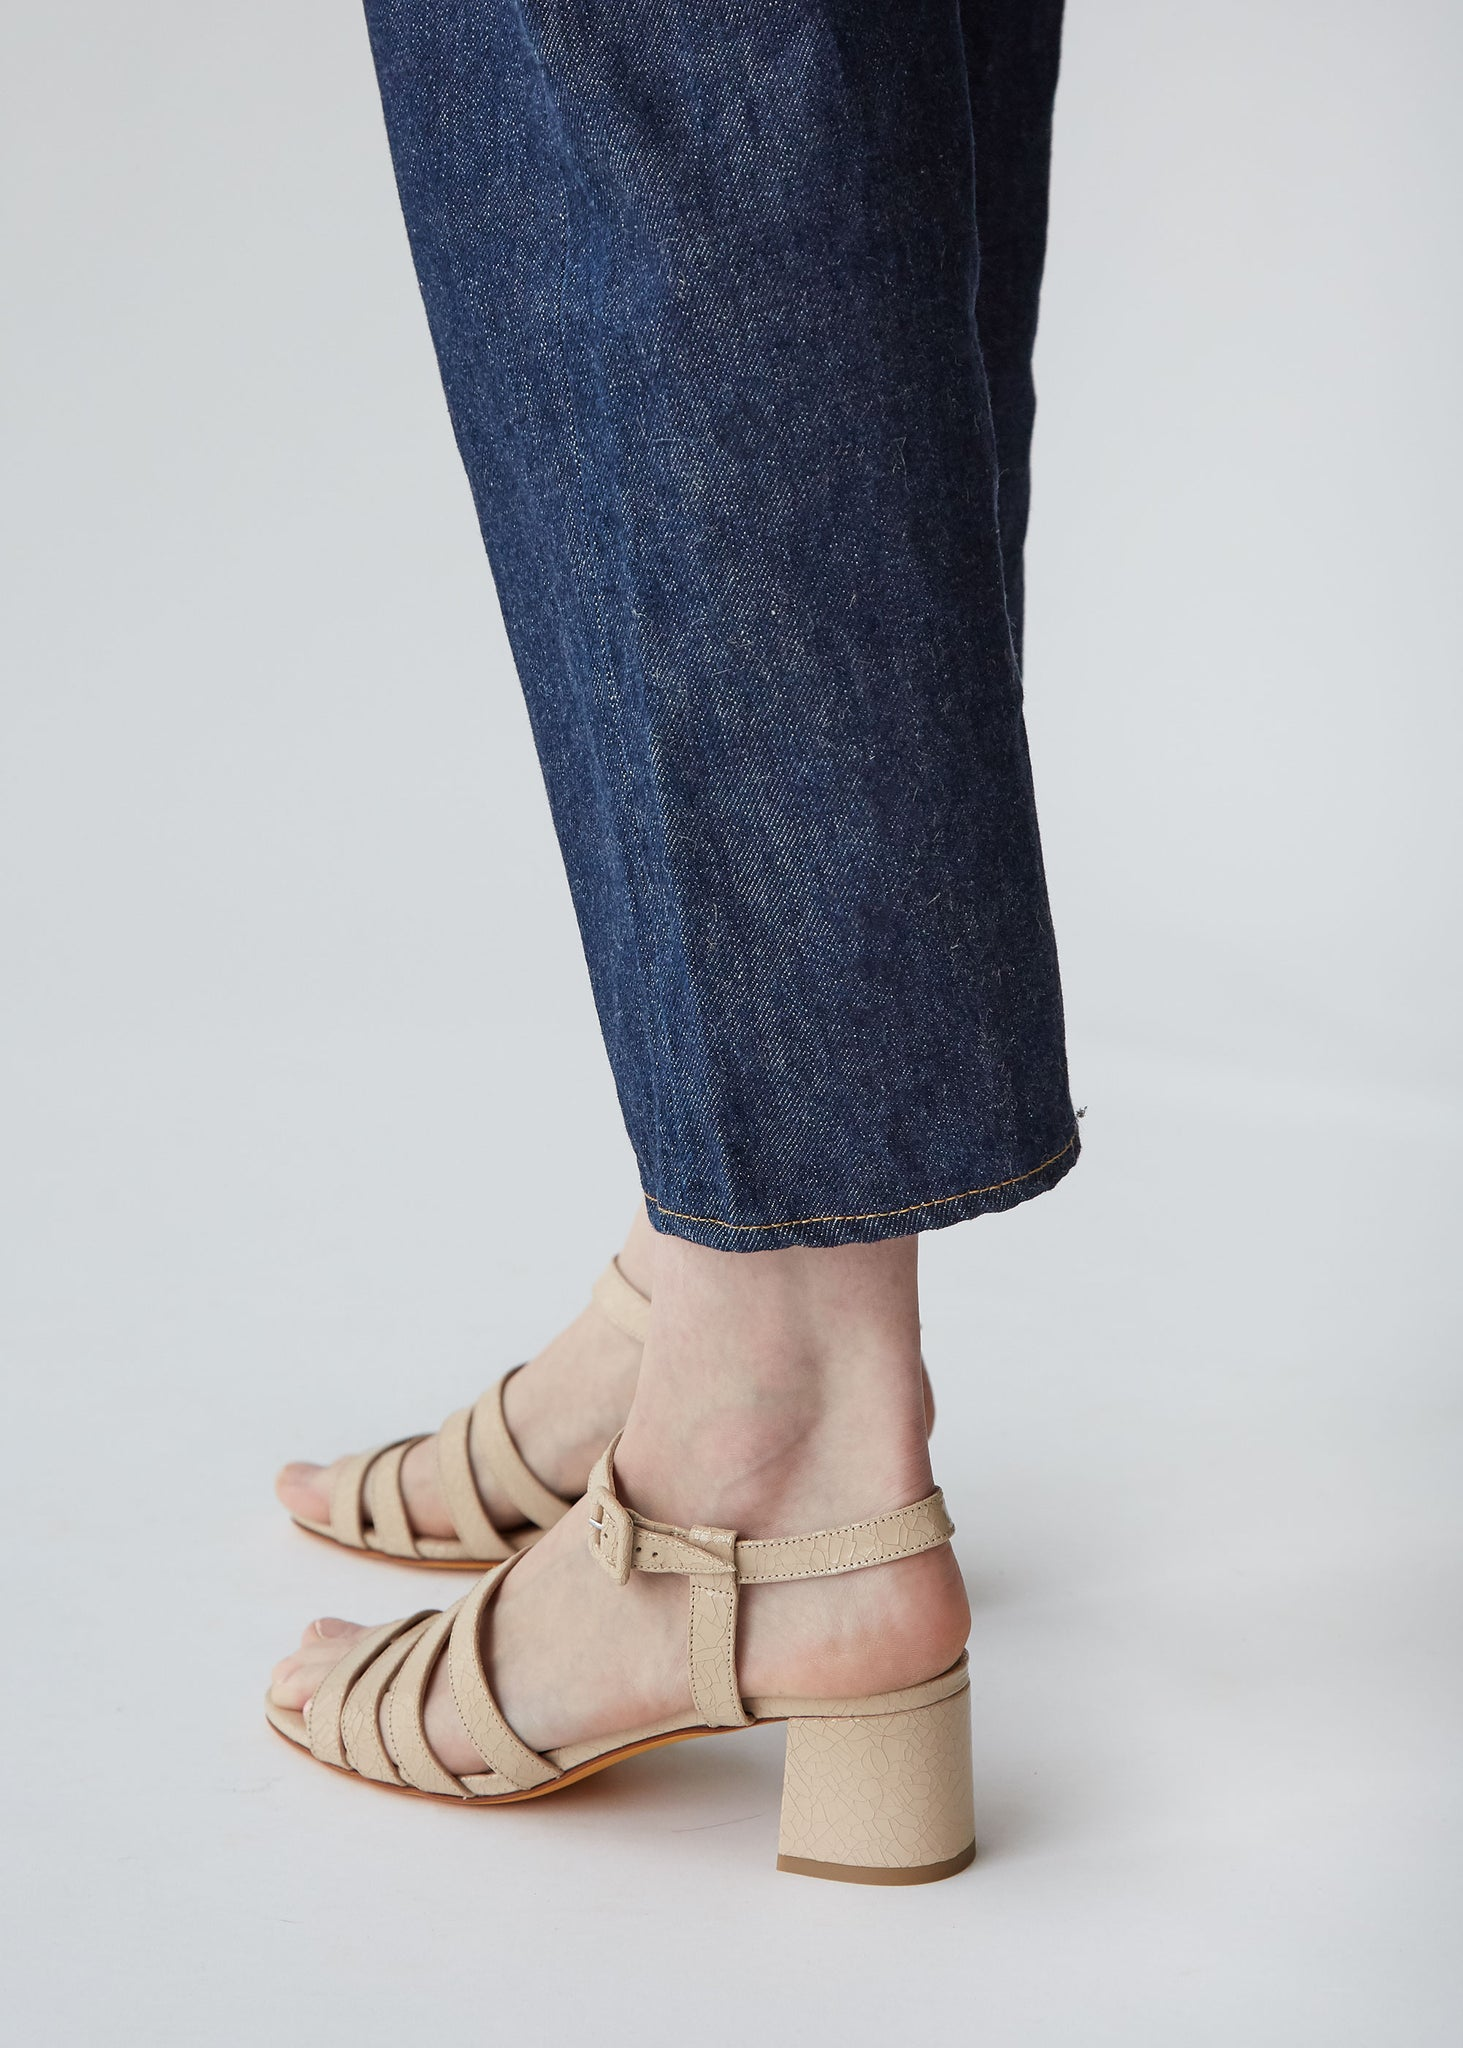 Palma Low Sandal in Buff Crackle - SOLD OUT